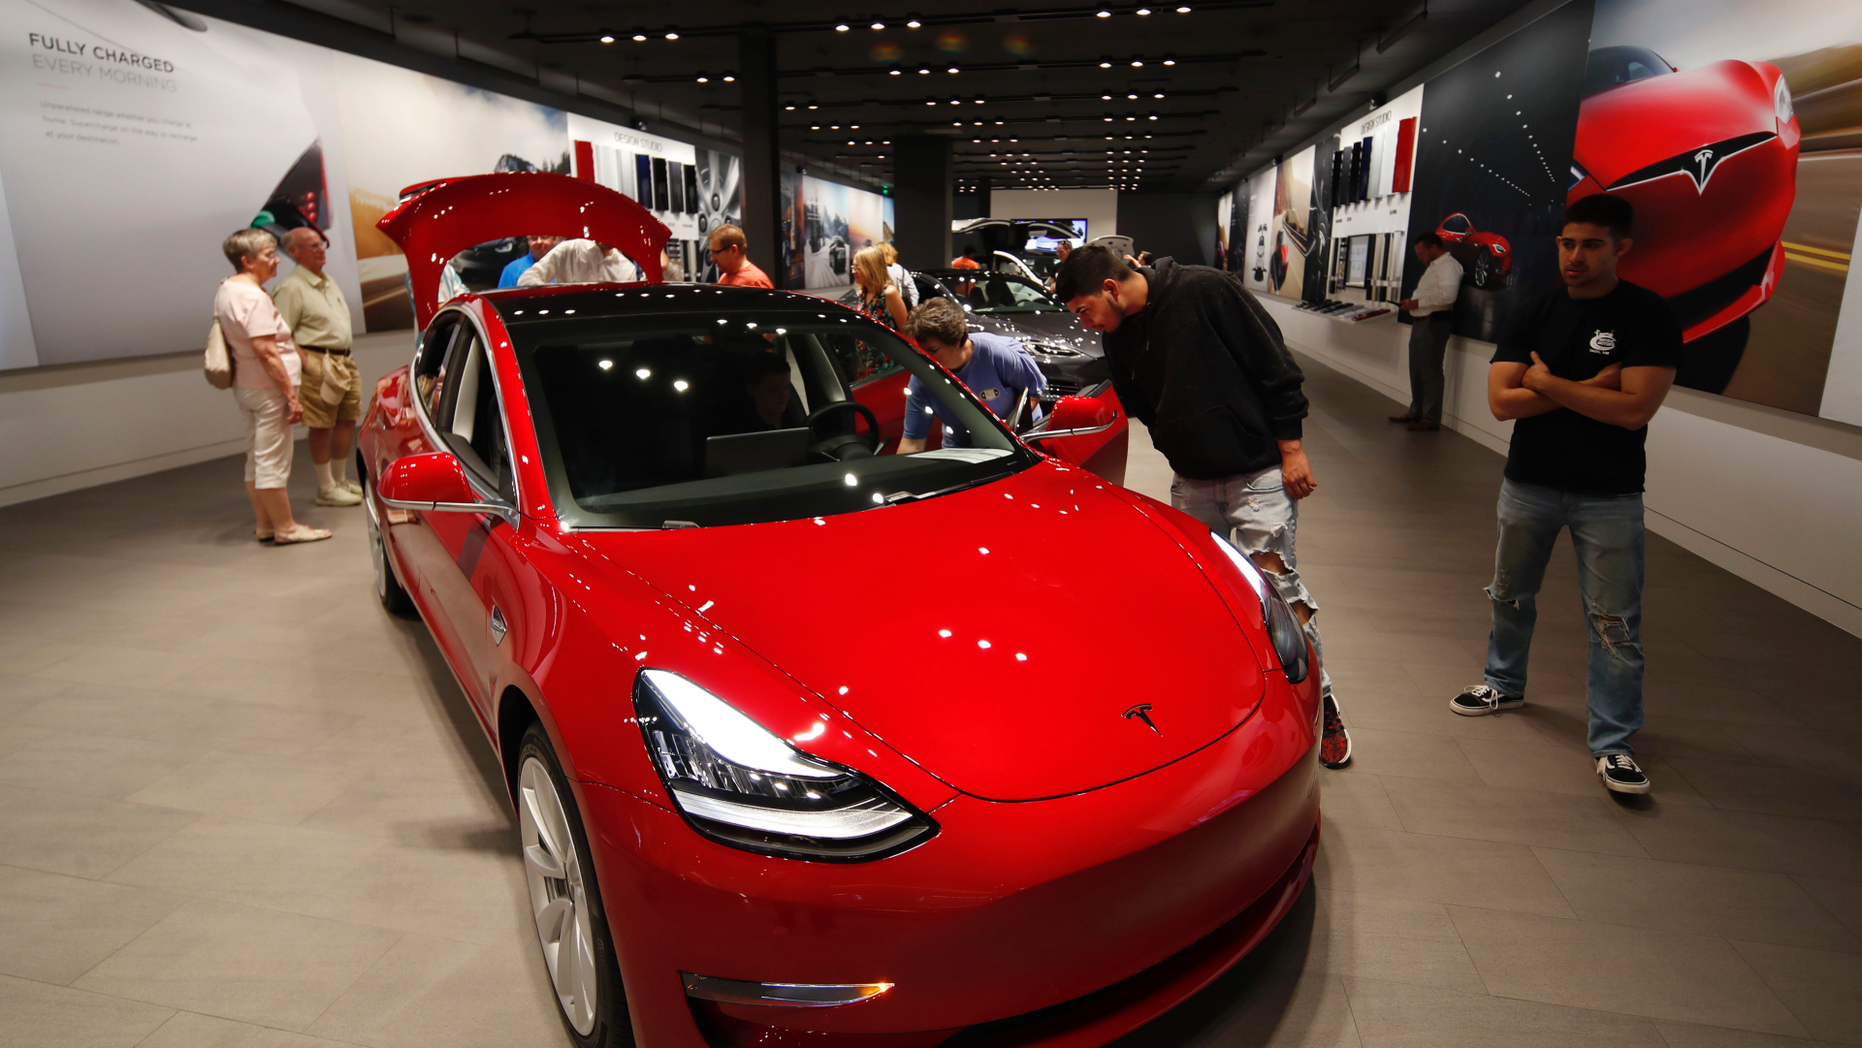 Tesla to raise model prices by average of 3%